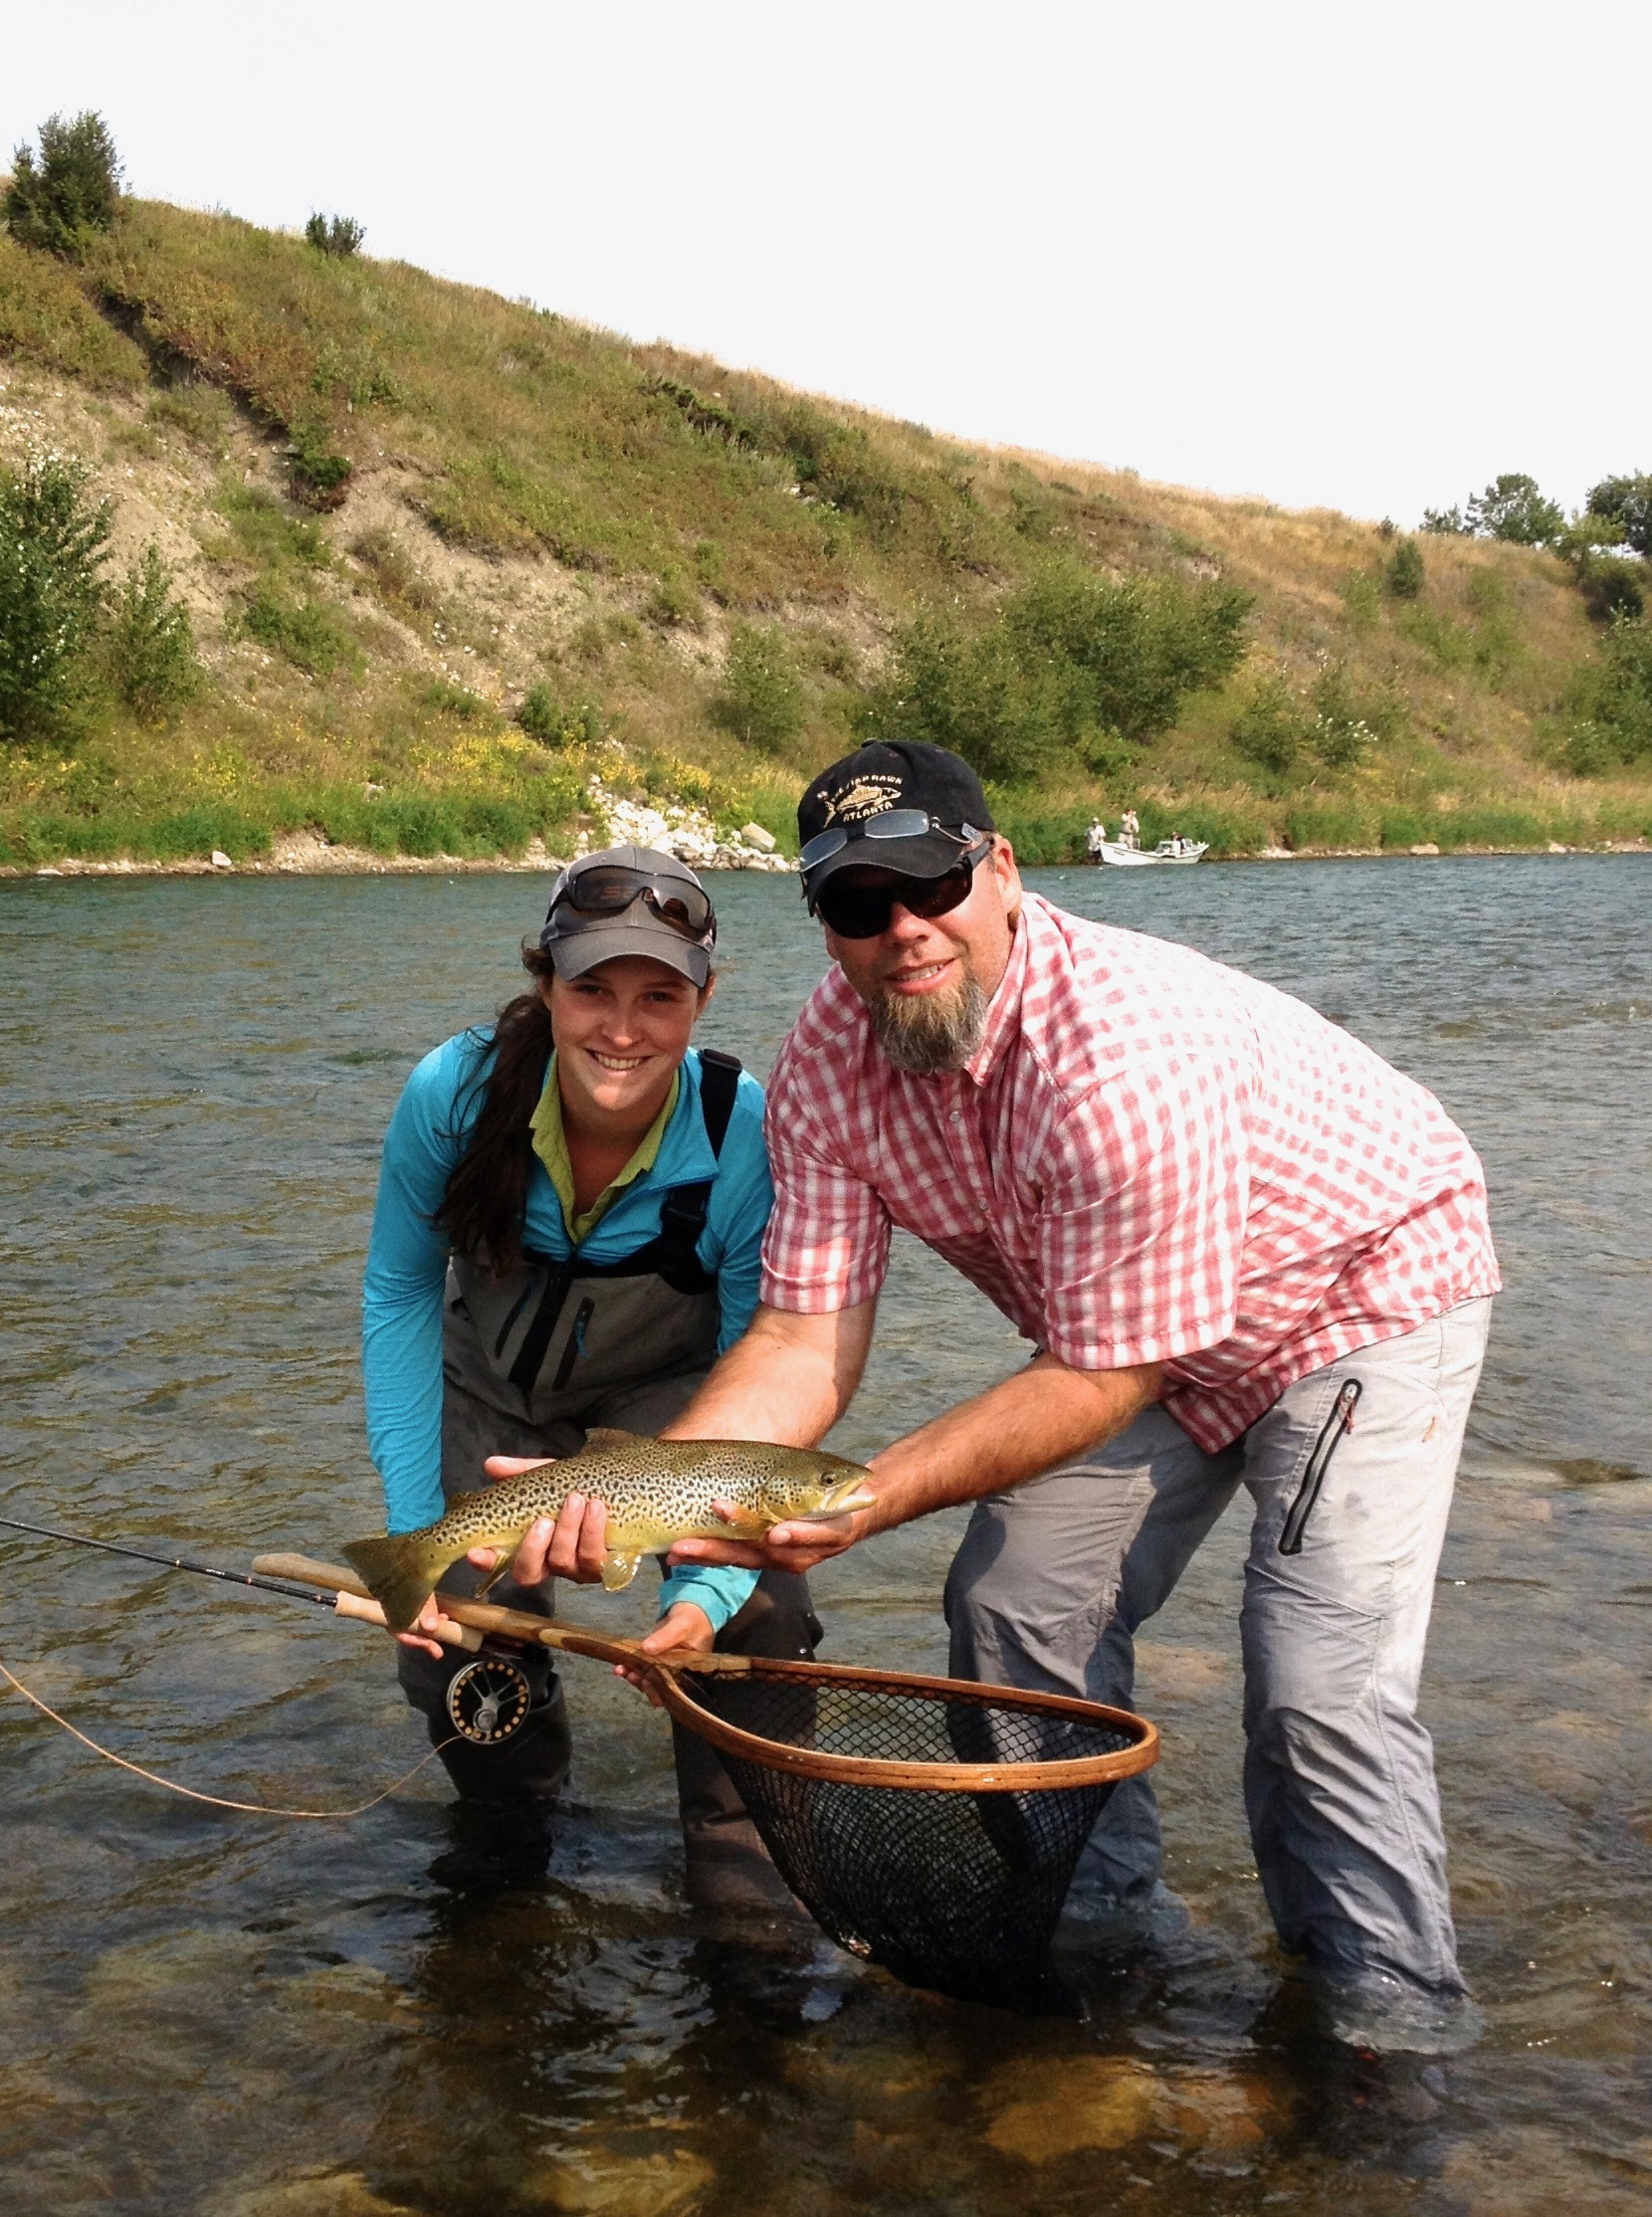 The Intermediate Bow River School:  https://www.ironbowflyshop.com/intermediate-fly-fishing-1